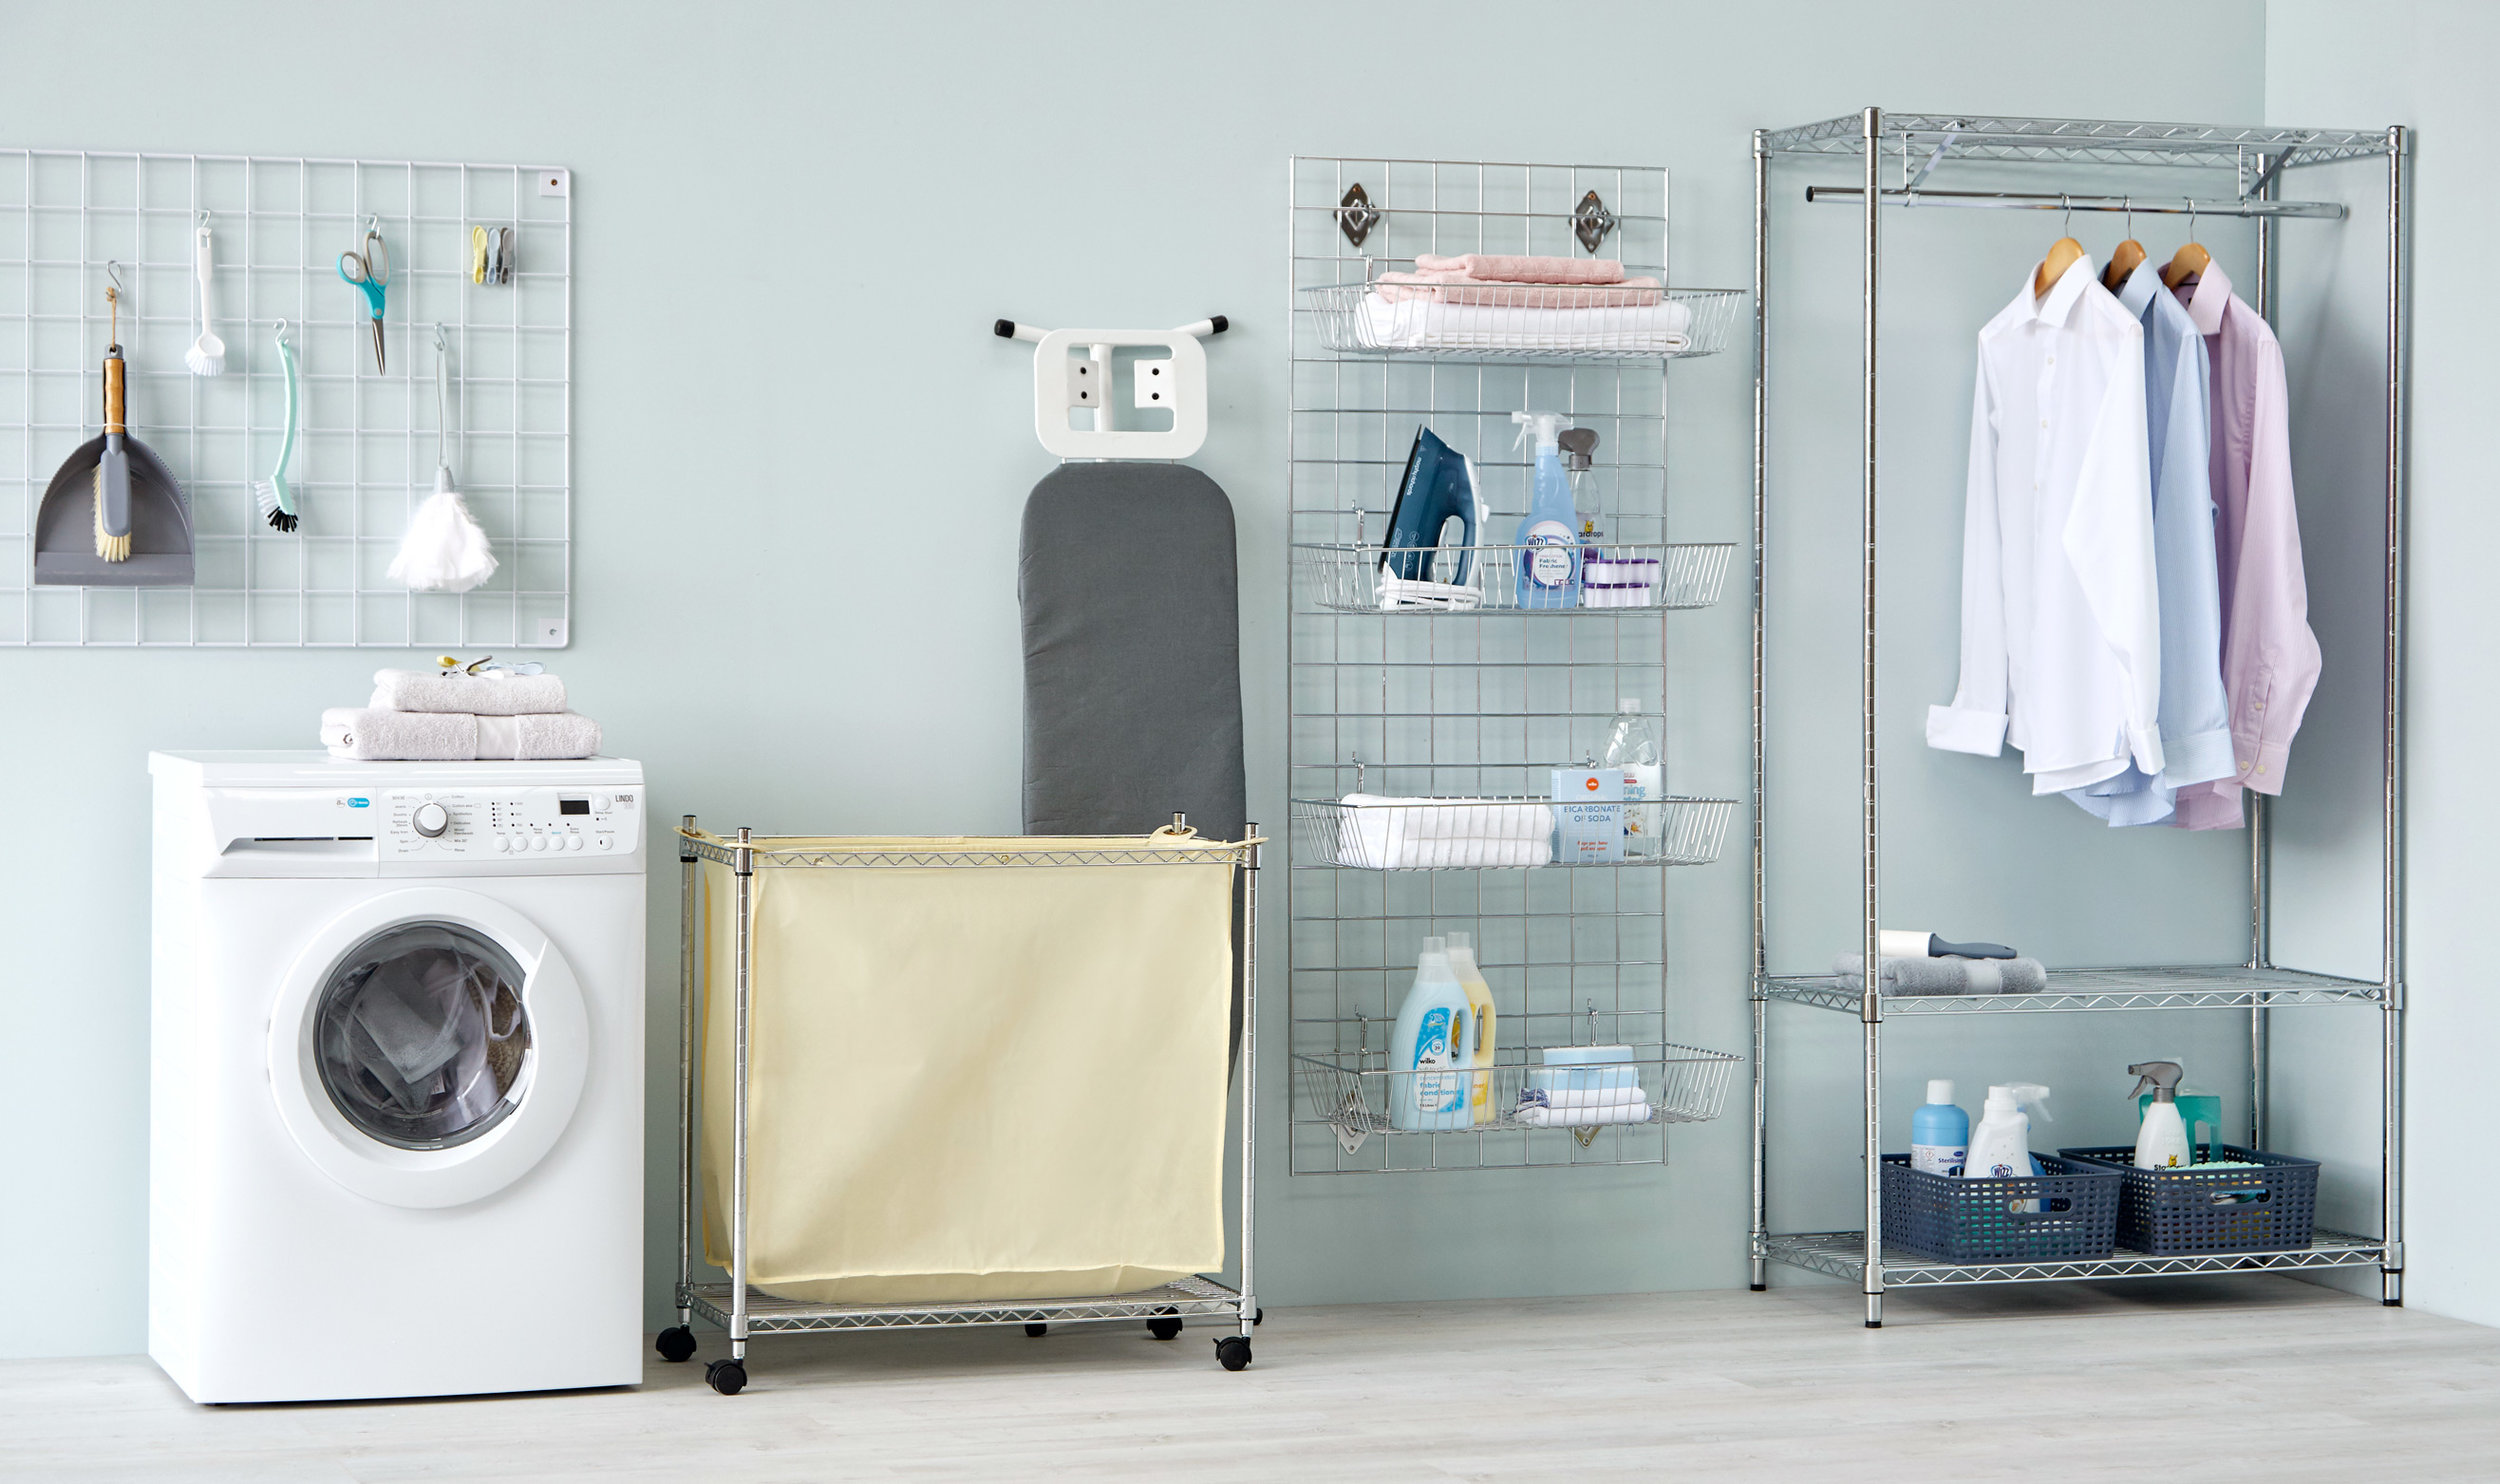 Utility_Room_Storage_roomset_photography.jpg